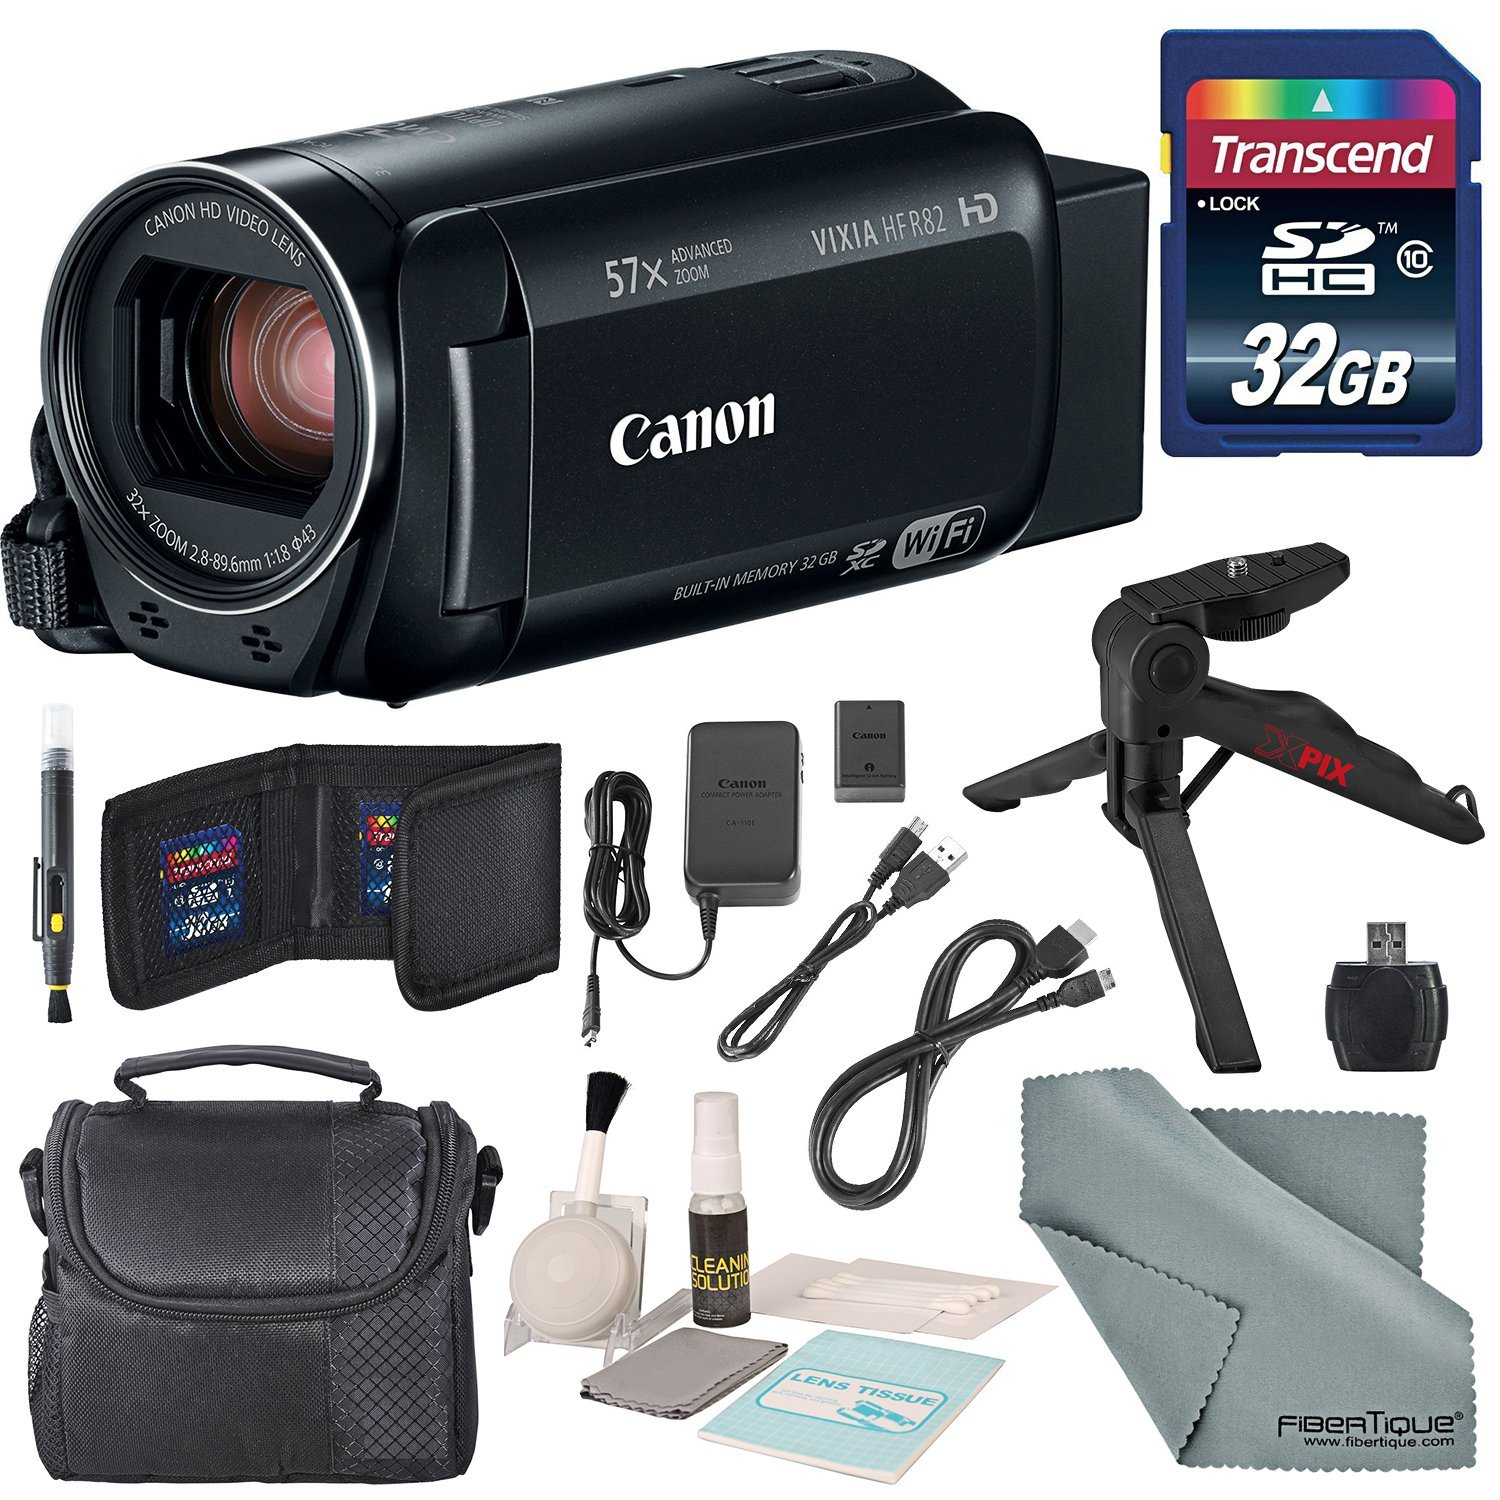 Canon Vixia HF R82 HD Camcorder Bundle w/ 32GB SD Card, Table Tripod, Camcorder Case, Cleaning Accessories, and Fibertique Cleaning Cloth by Canon